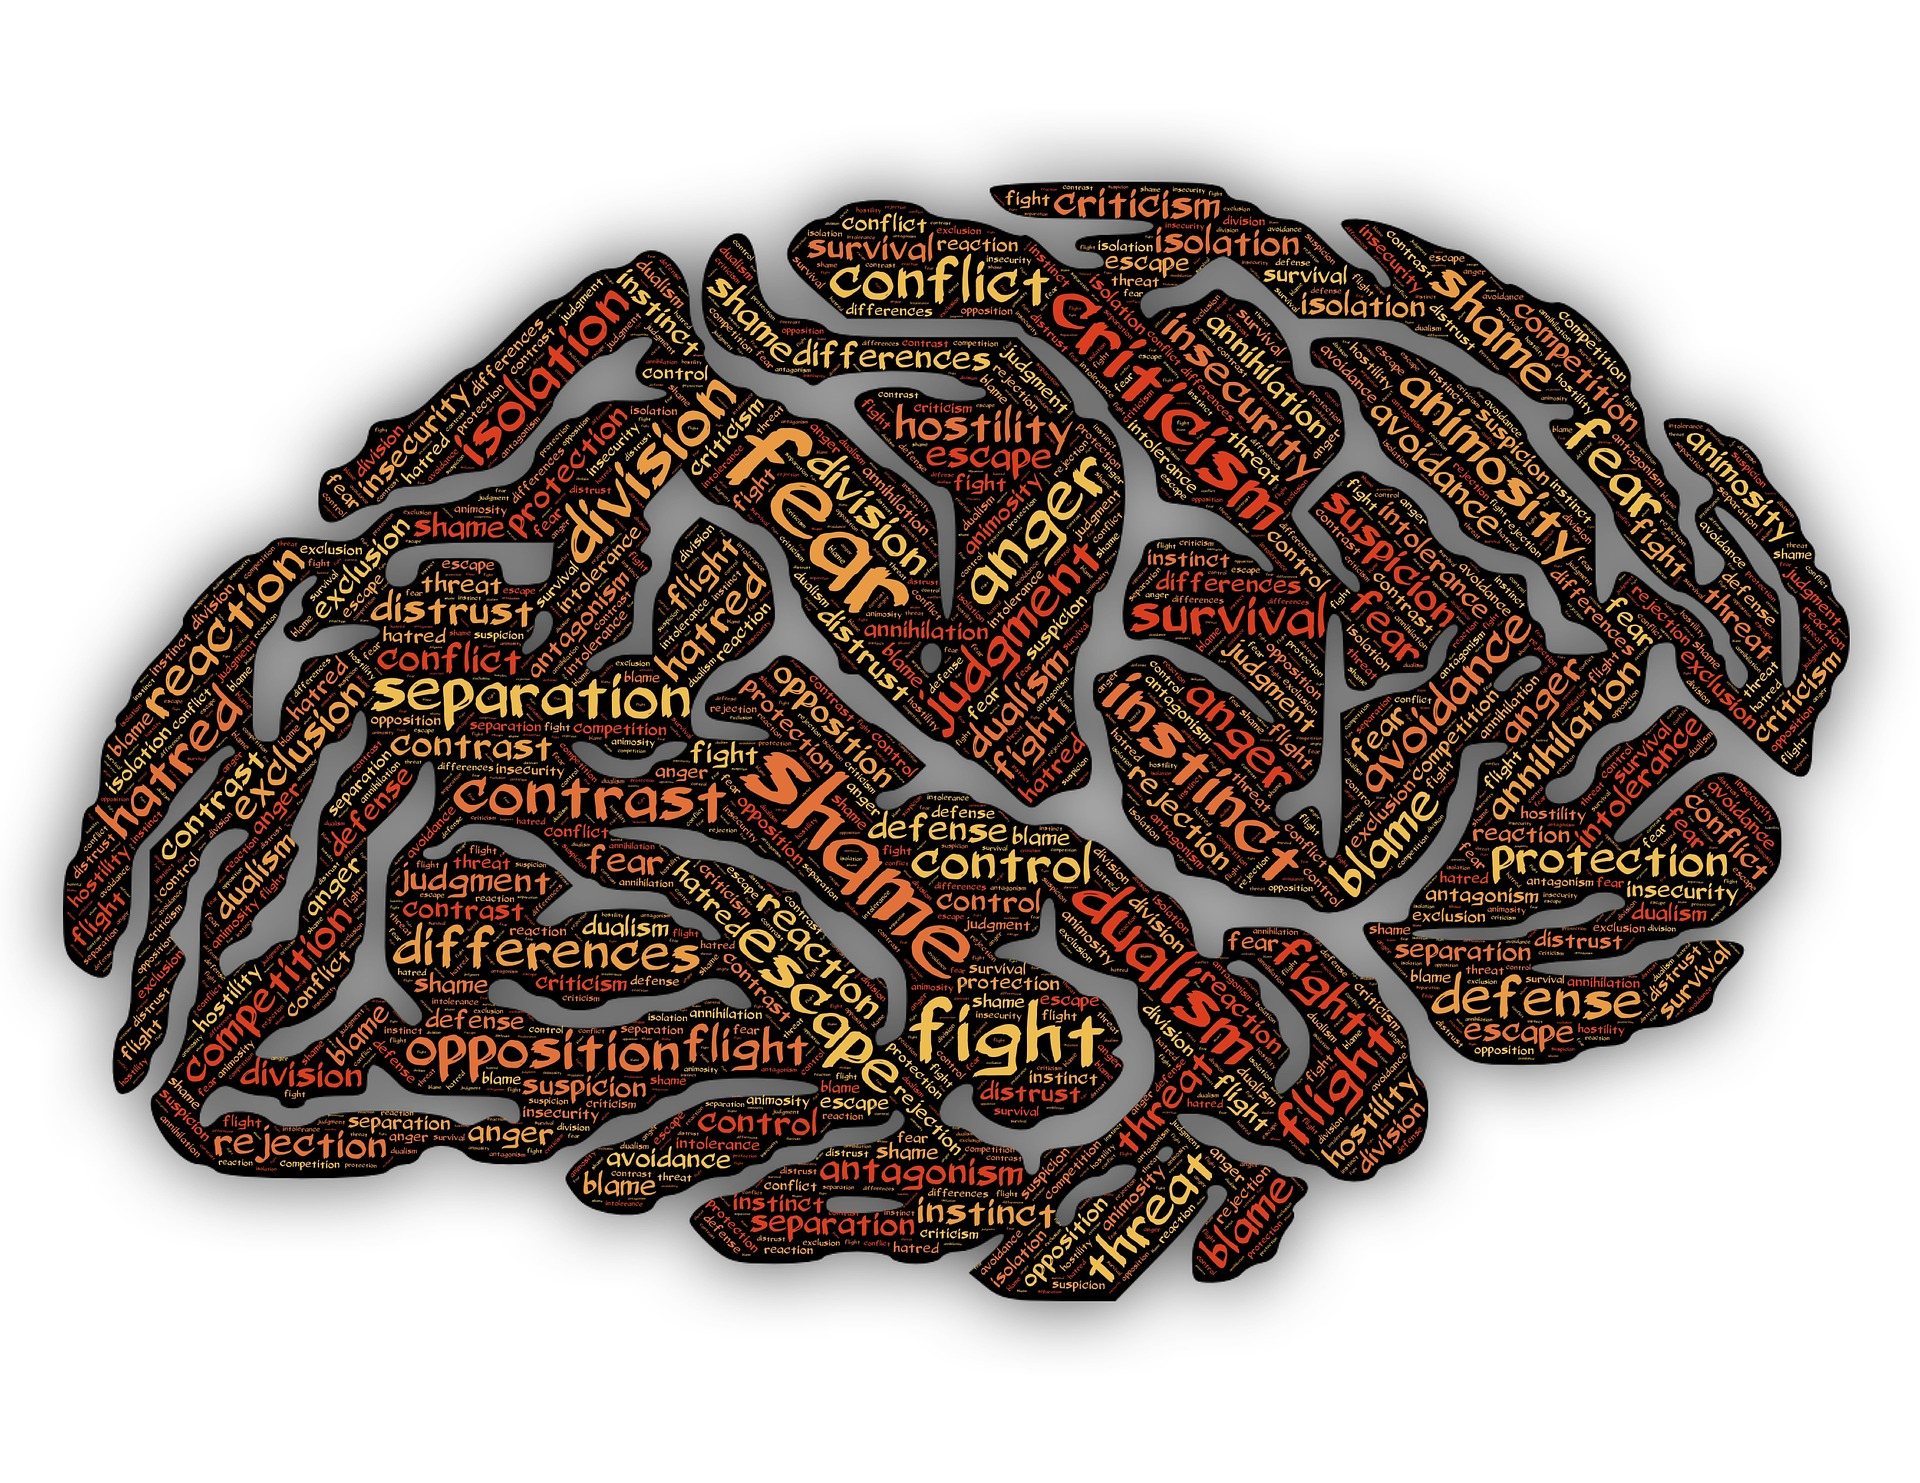 [Image: illustration of a brain on a white background that is coloured in brown and has words in yellow, orange, and red that read things like: fear, anger, shame, fight, escape, threat, opposition, conflict, criticism, etc.].